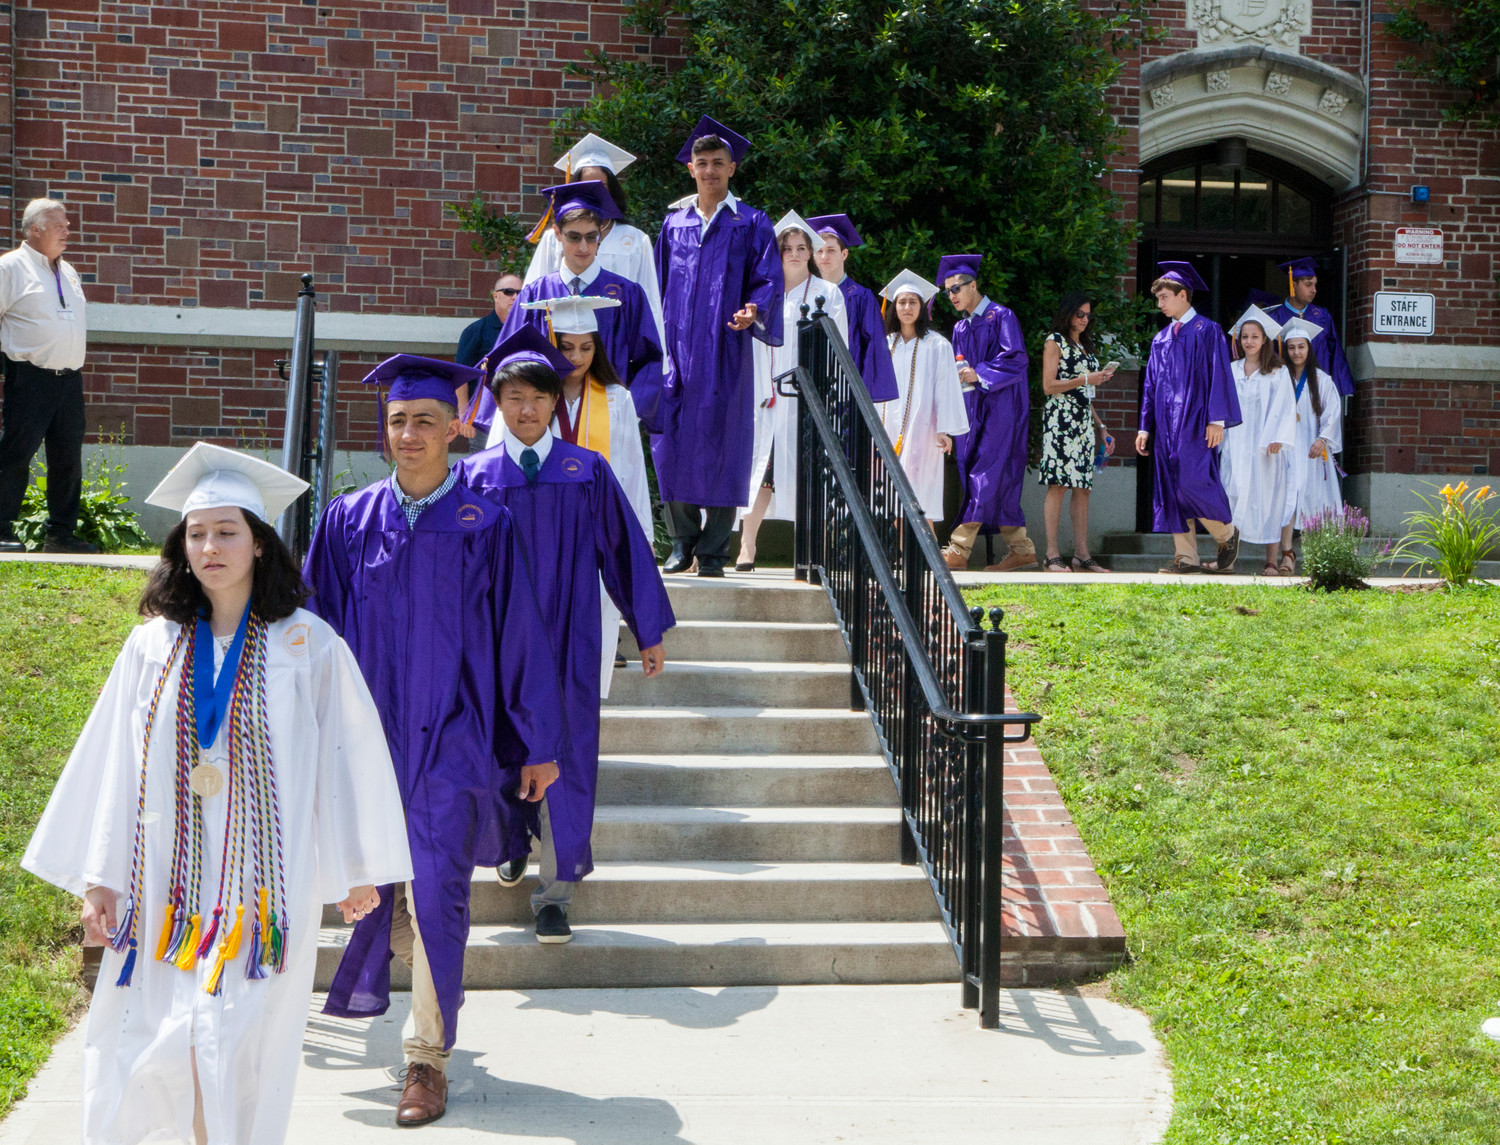 Some of the students graduating wore stoles to mark academic achievement.